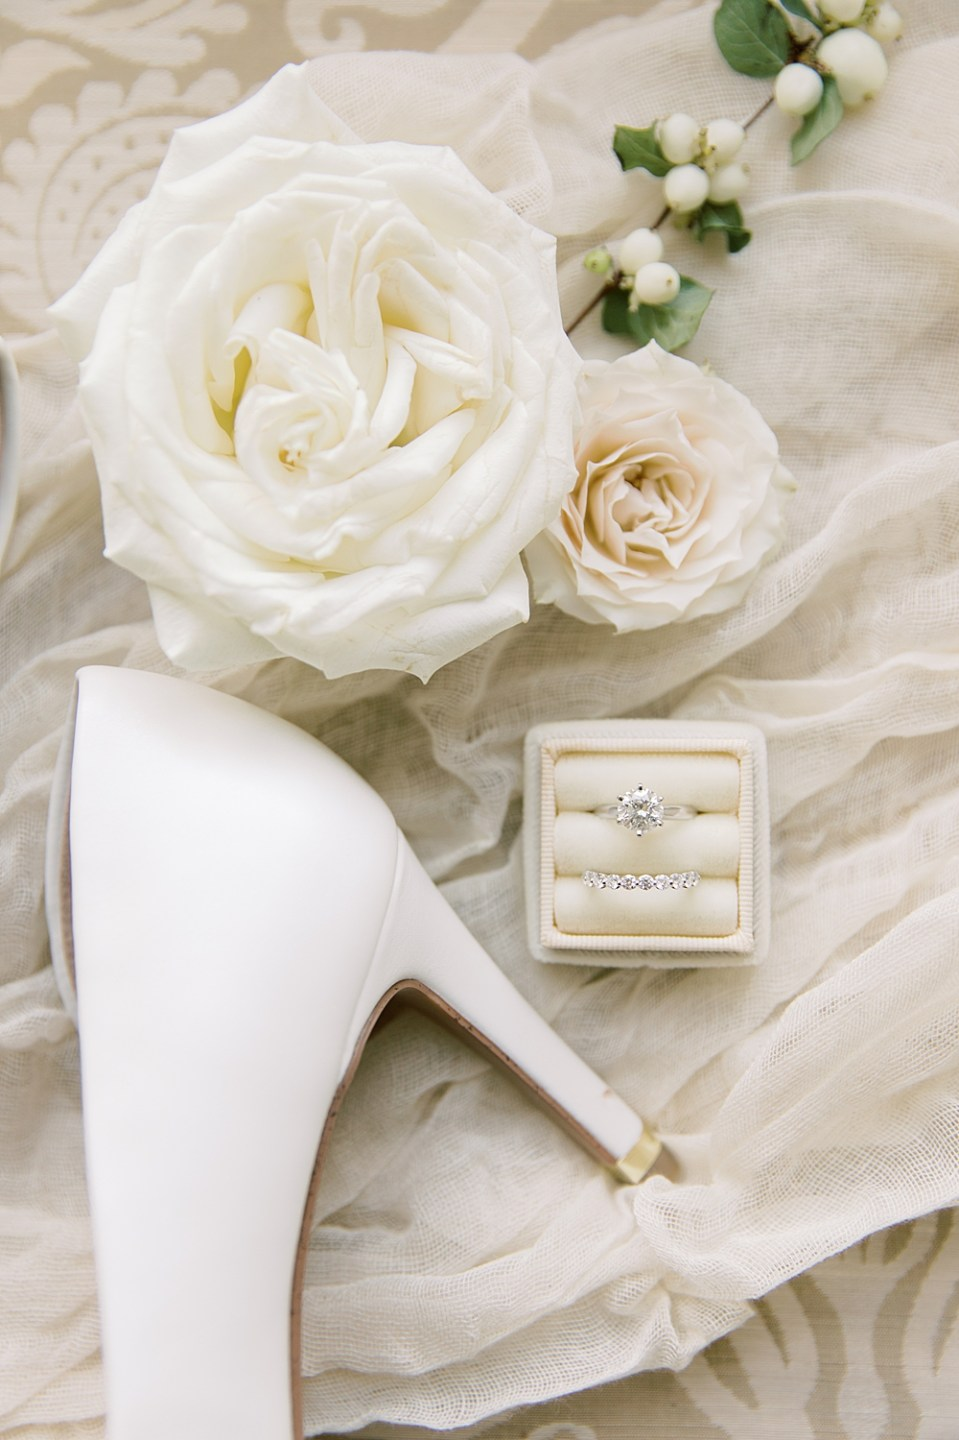 Wedding Details | Ashford Estate Wedding | Sarah Canning Photography